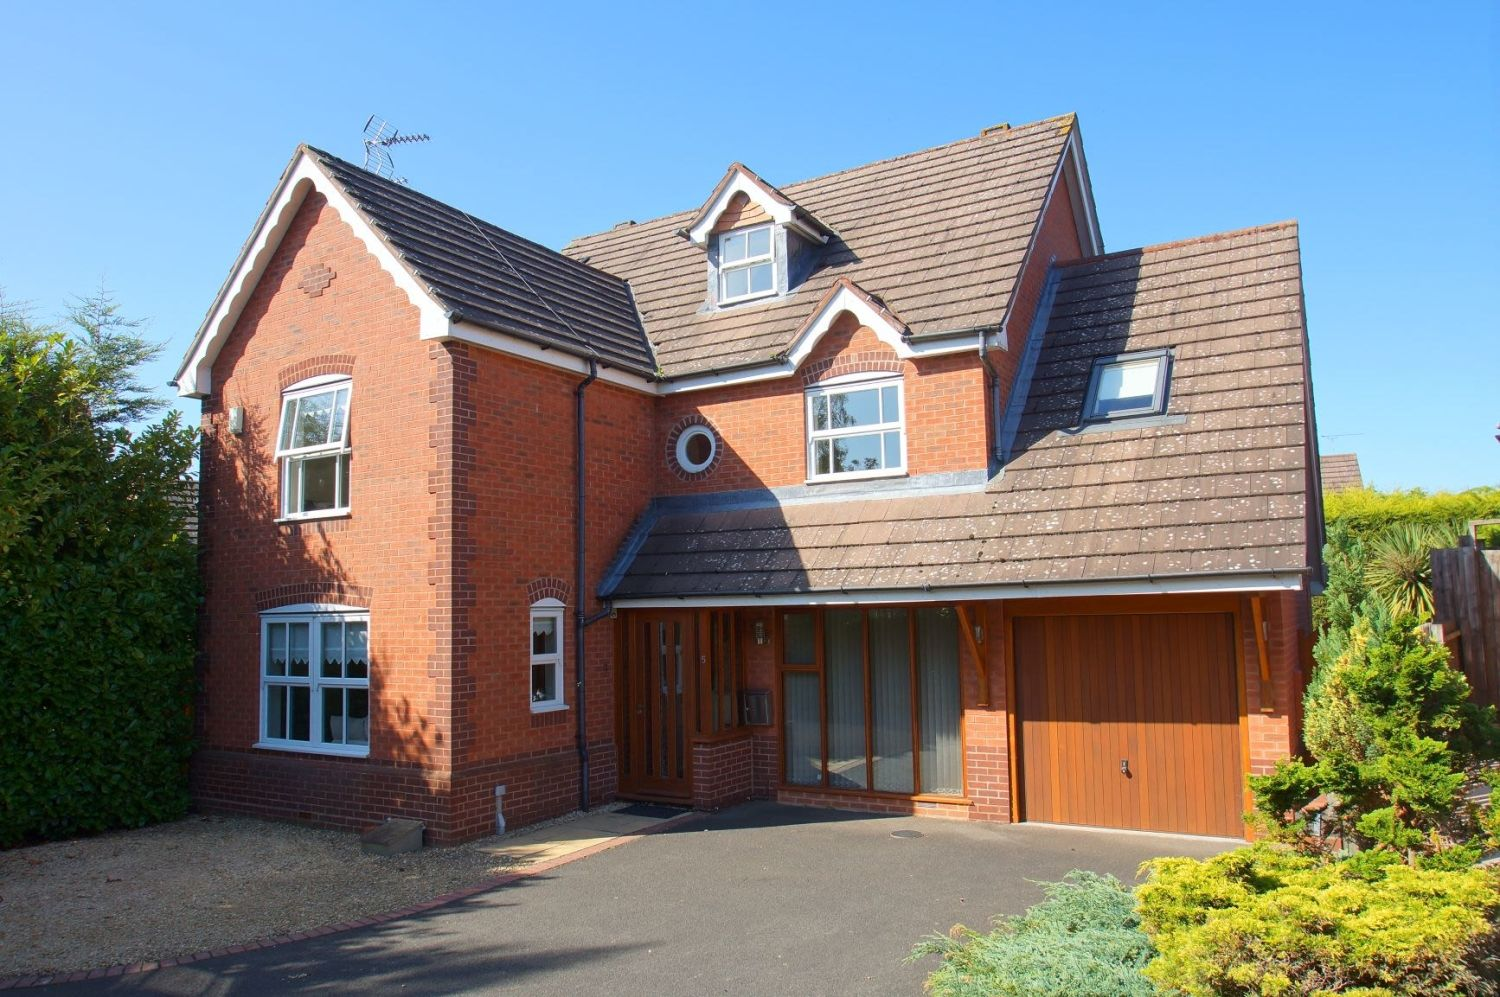 4 bed detached for sale in Acre Lane, Webheath  - Property Image 1